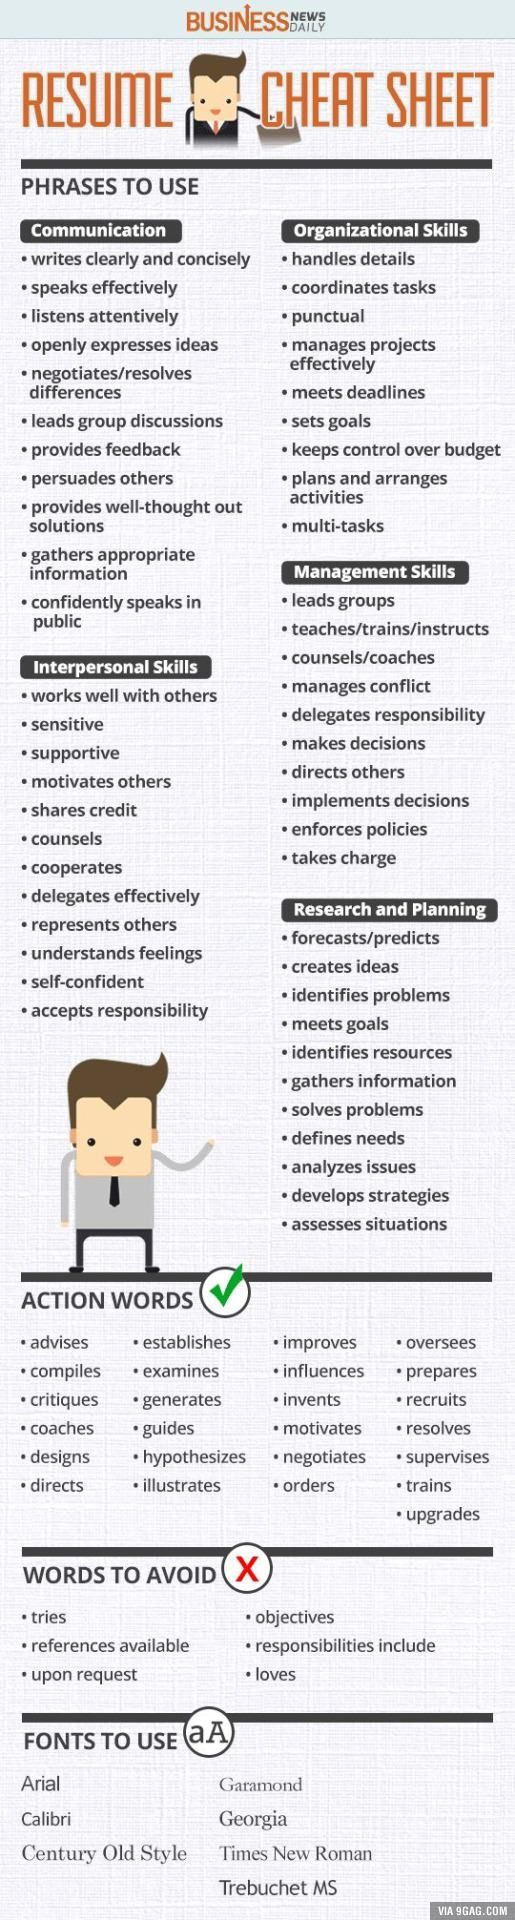 resume meaning usage